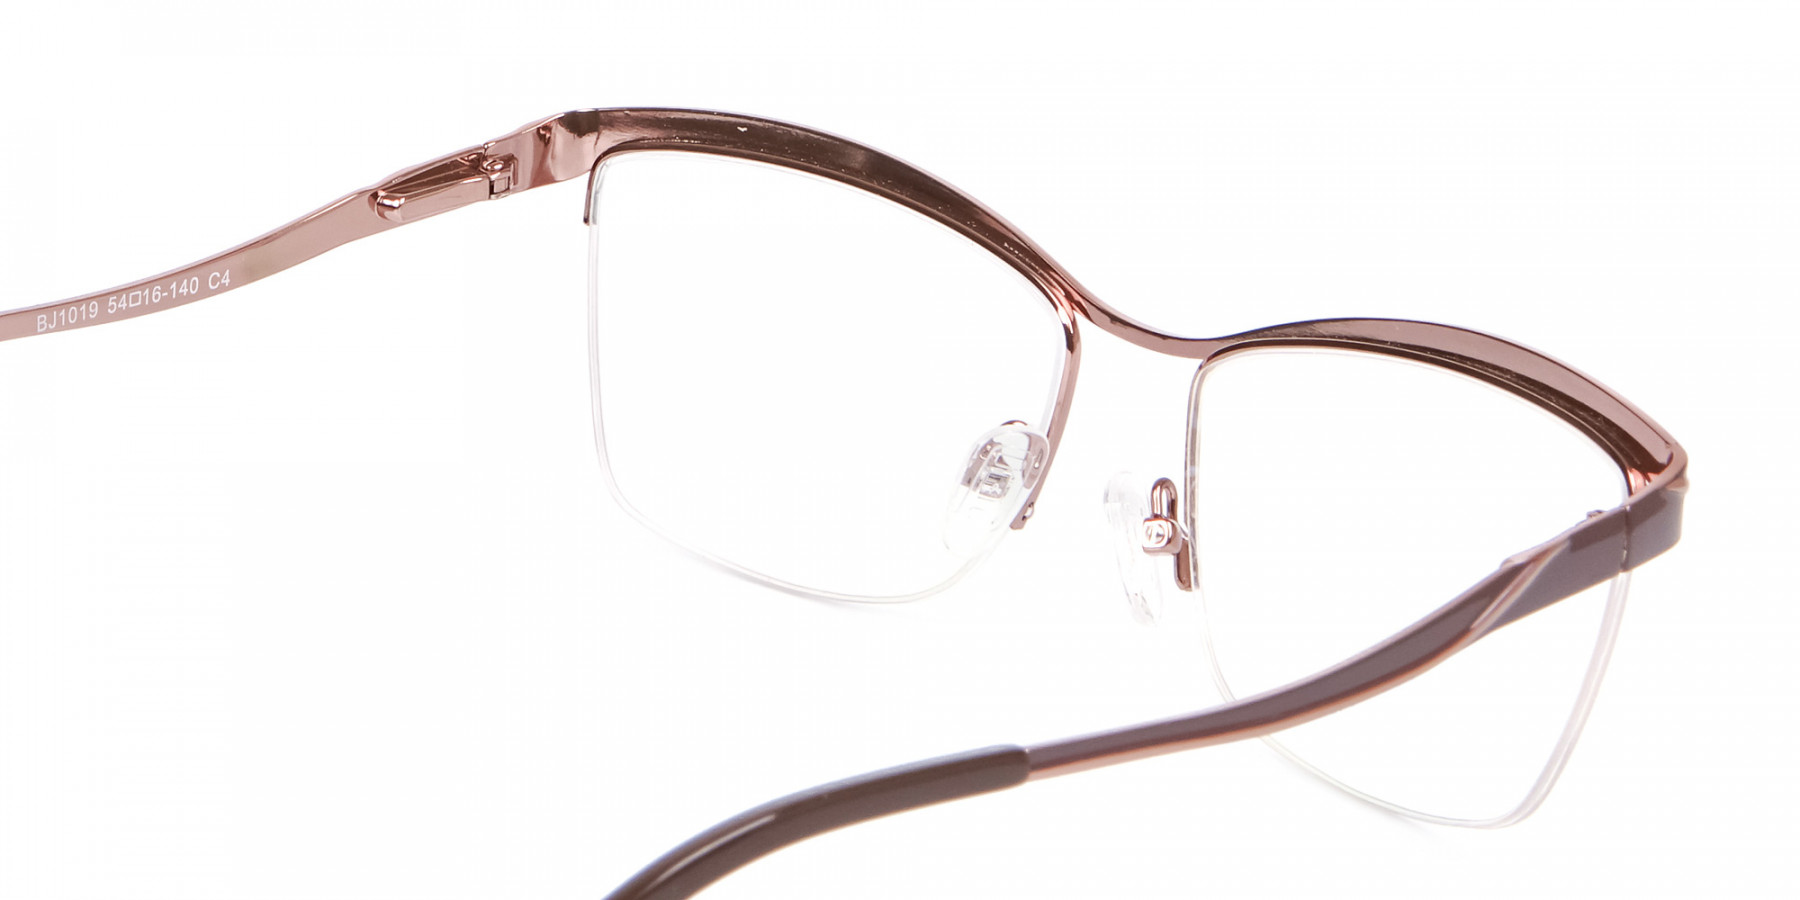 Glossy Brown Browline Half-Rimmed Glasses-1